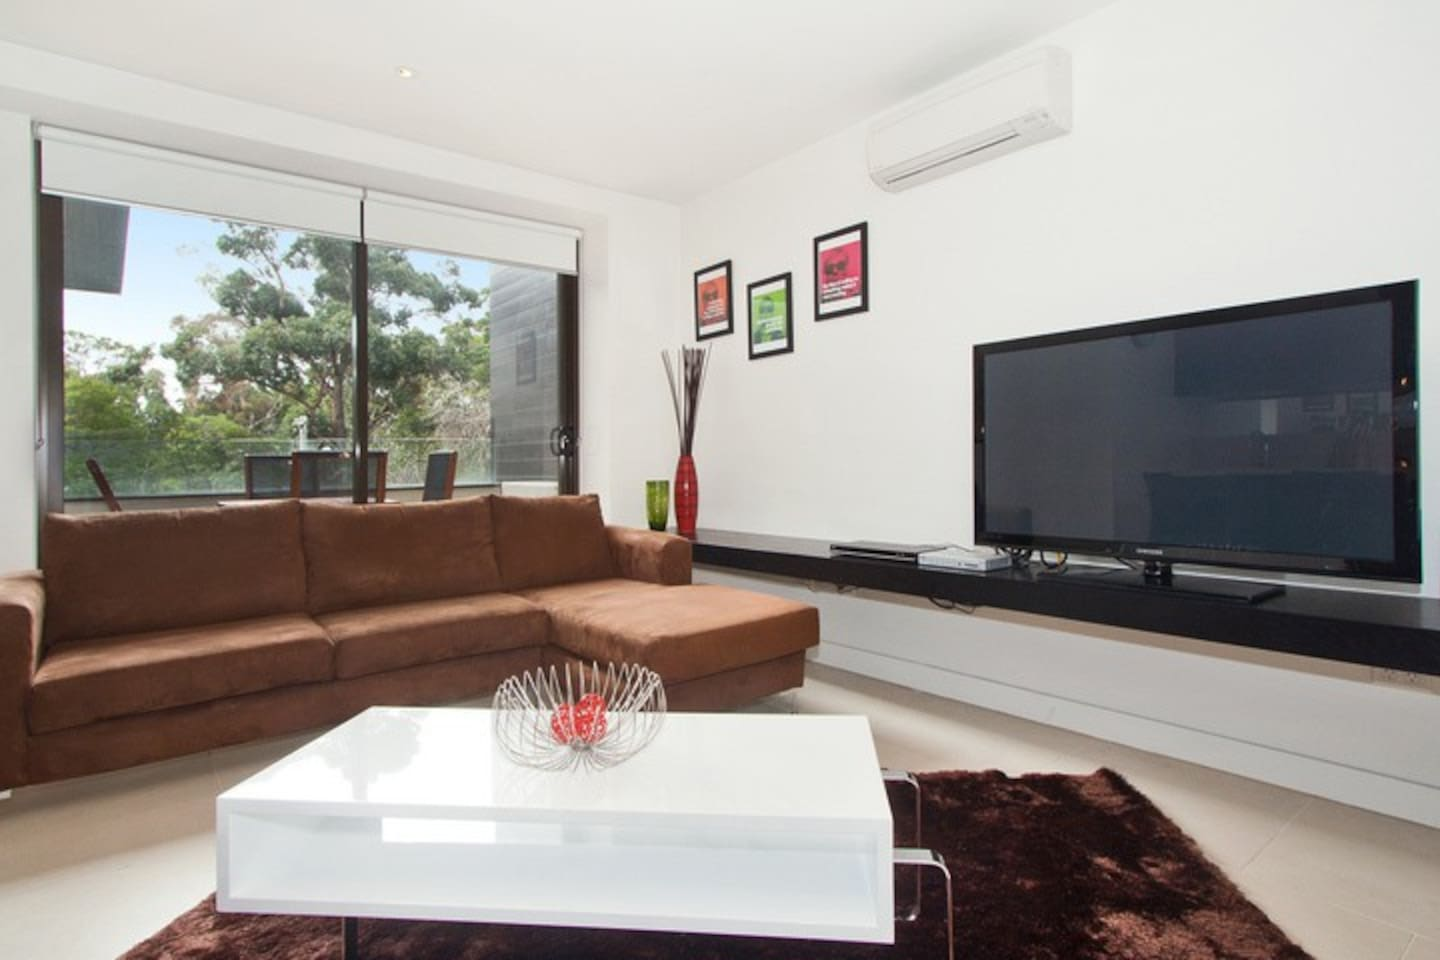 H219 2BR apt in heart of St Kilda